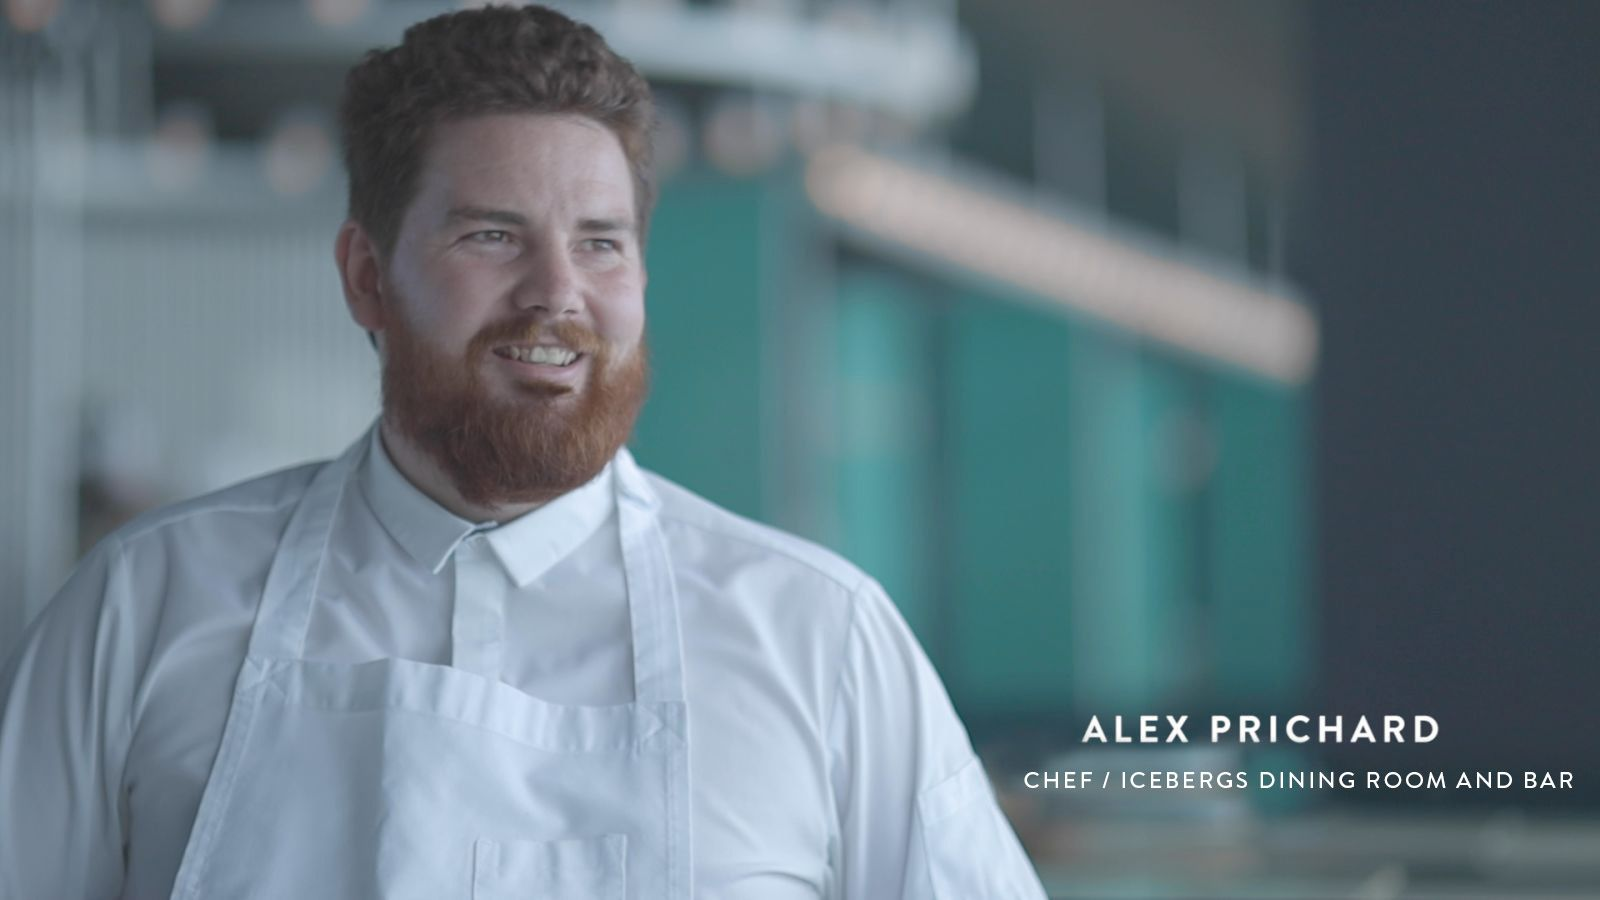 Alex Prichard - Chef of Icebergs Dining Room And Bar